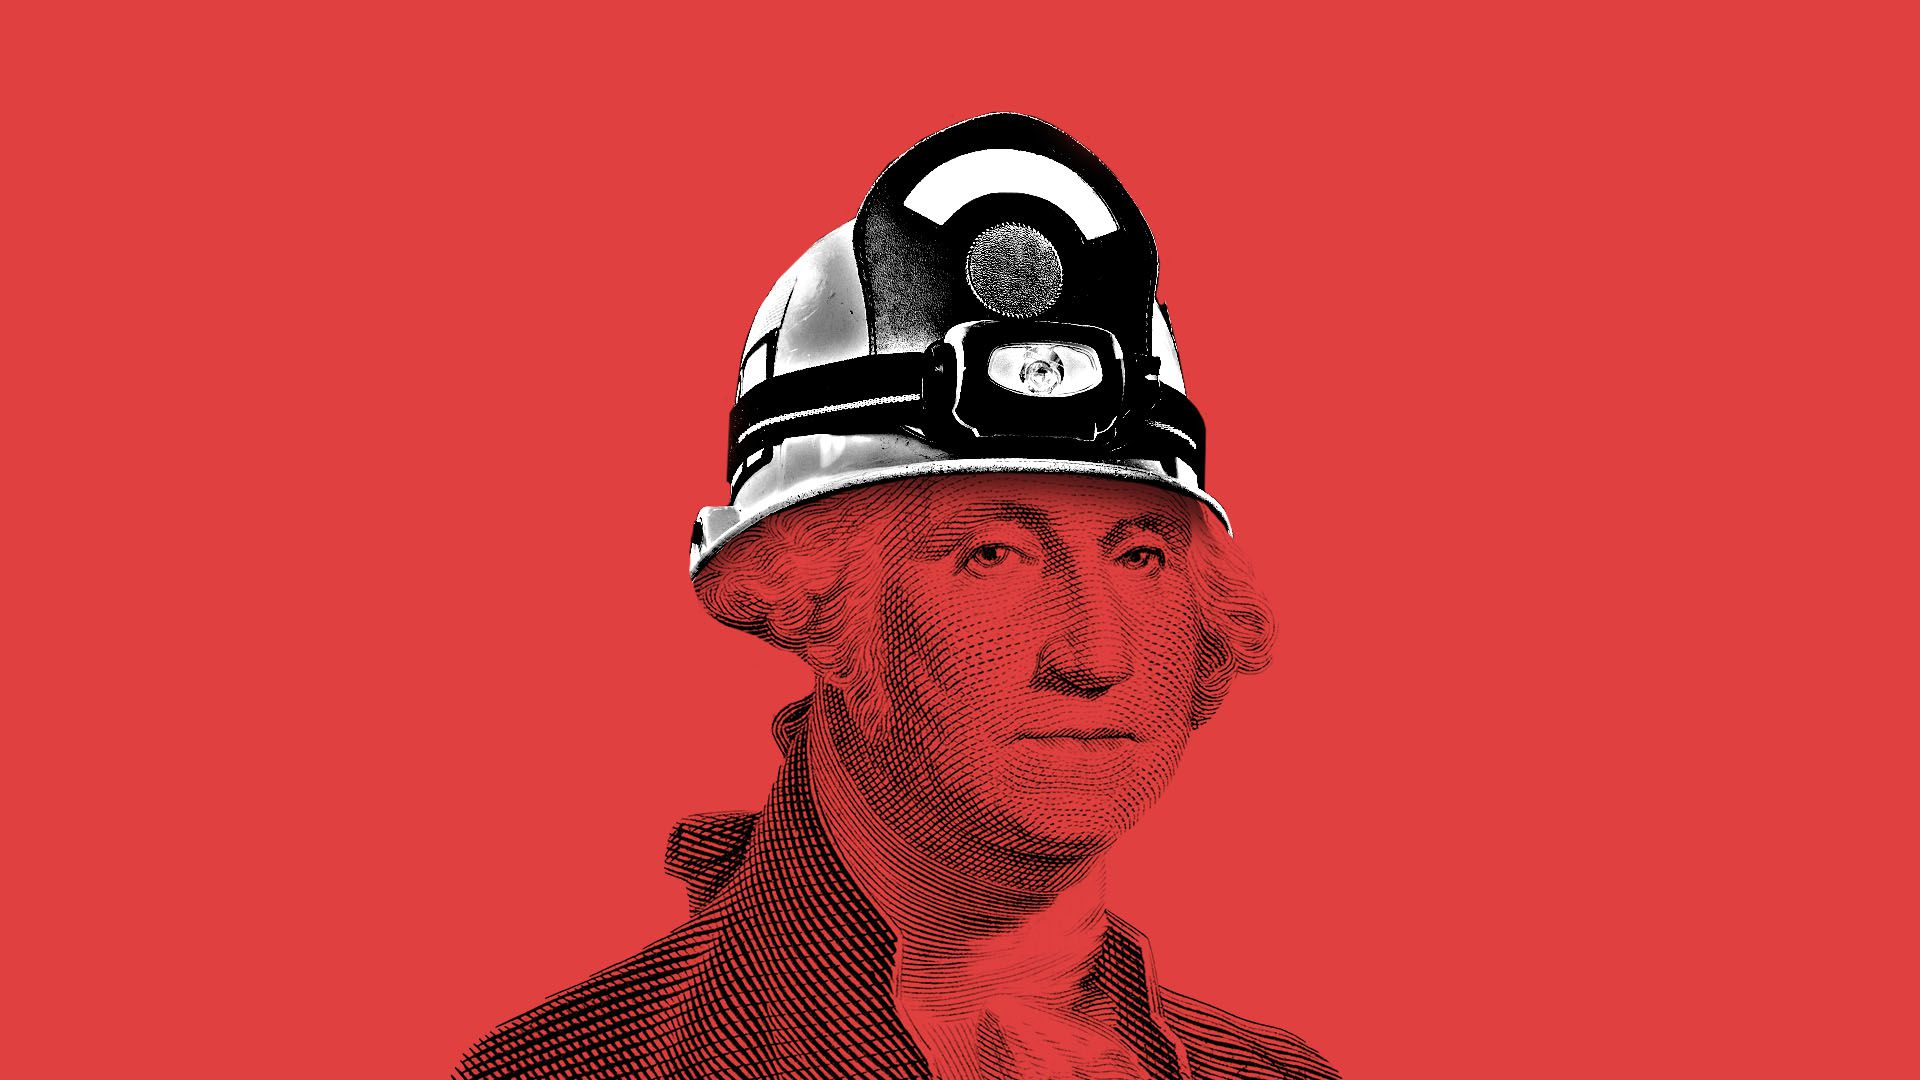 Illustration of George Washington wearing firefighter's helmet